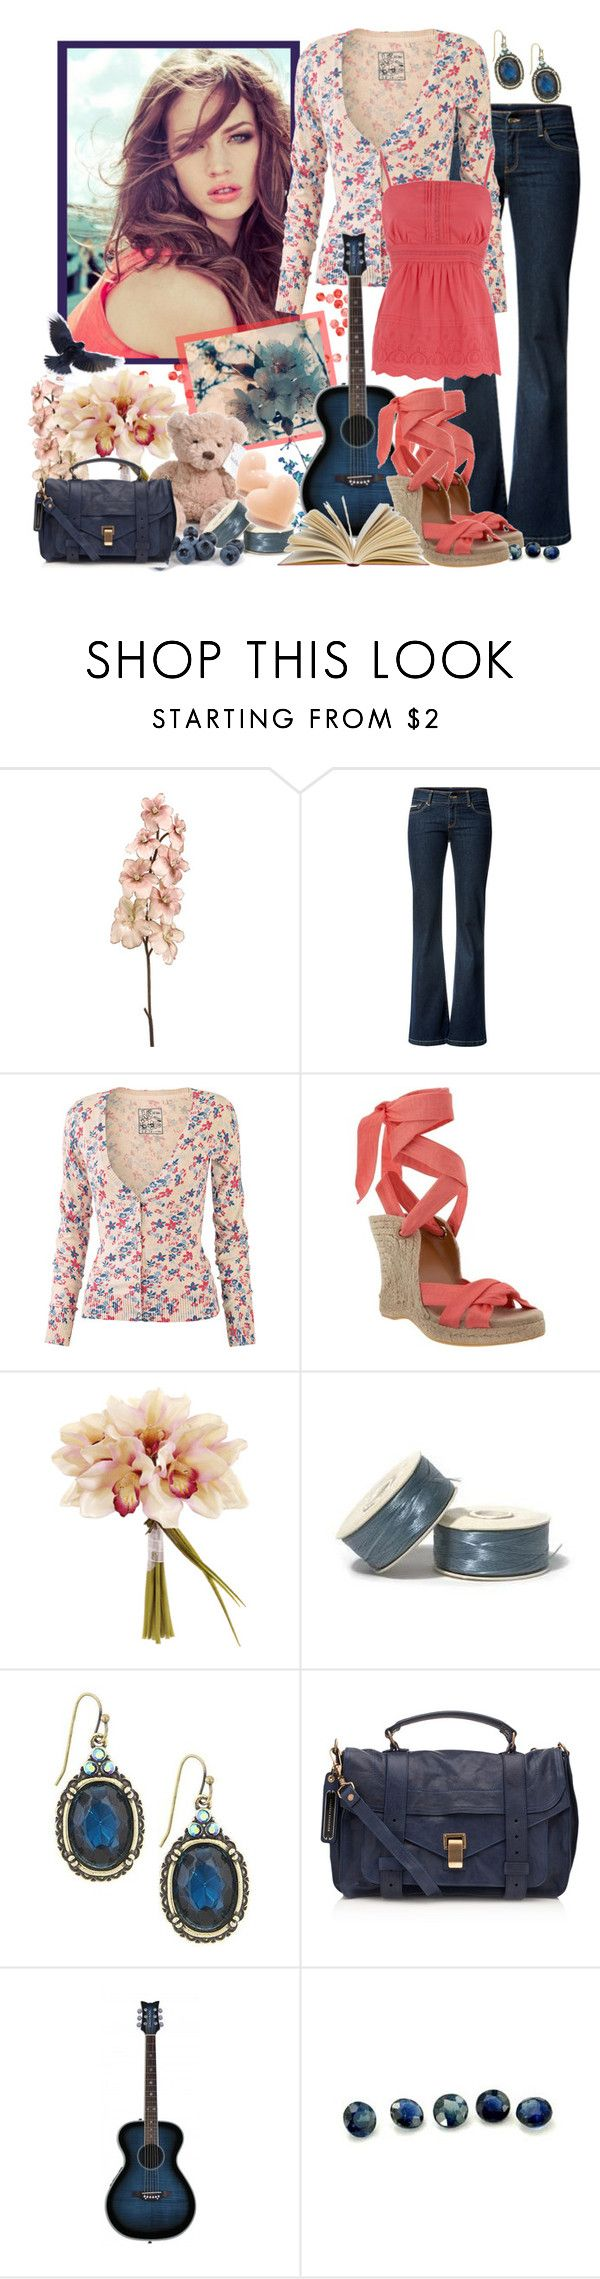 """Freebird"" by musicisair ❤ liked on Polyvore featuring MANGO, Fat Face, Old Navy, 1928, Proenza Schouler, Pixie, Raven Denim, Oasis, top handle bags and wedge shoes"